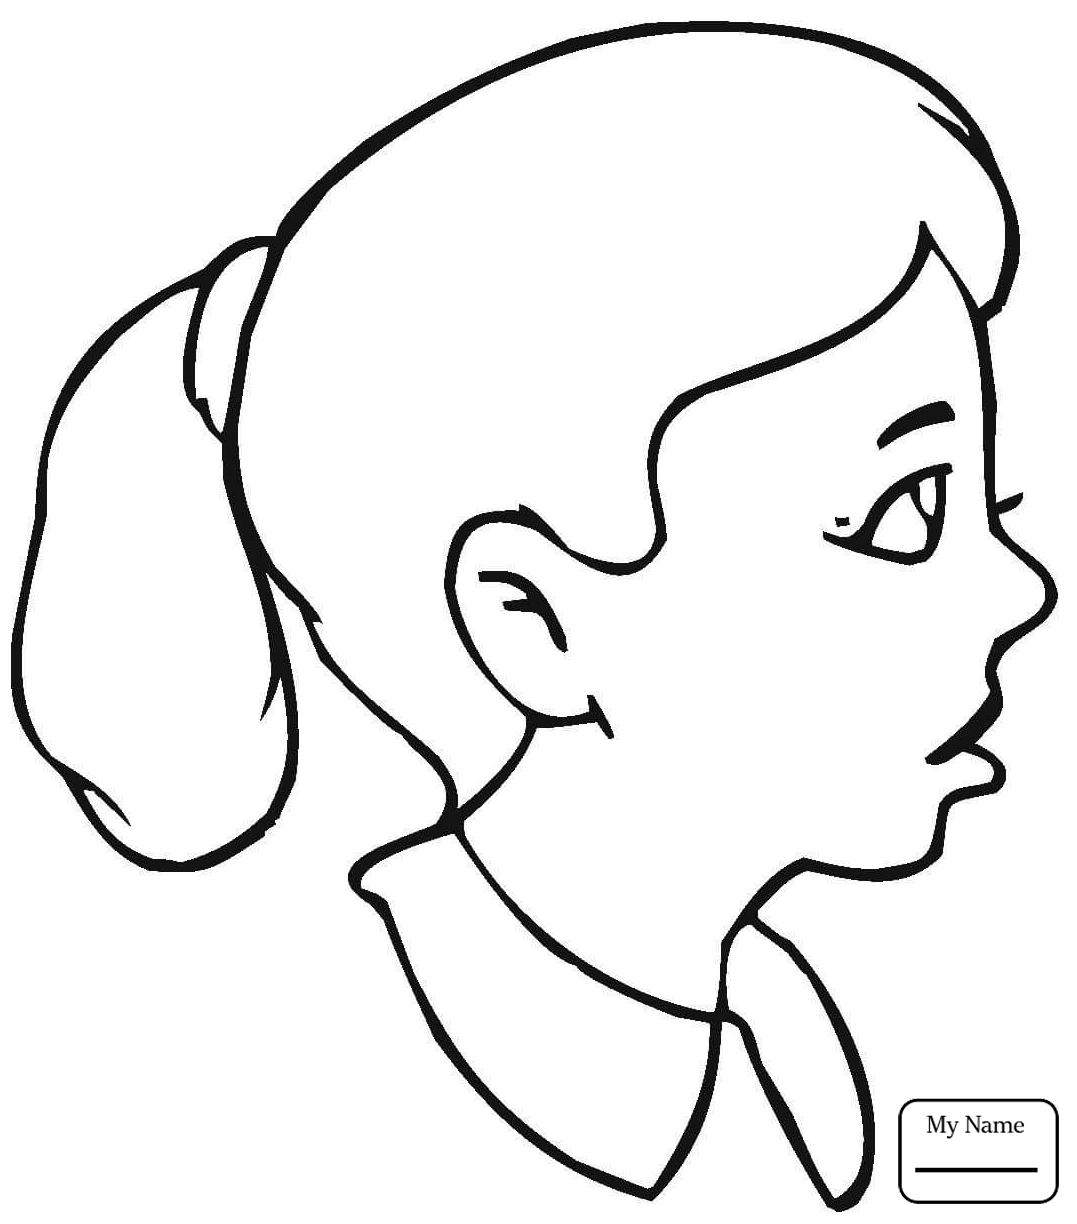 1077x1224 Coloring Pages For Kids Emotions Patriot Outline People